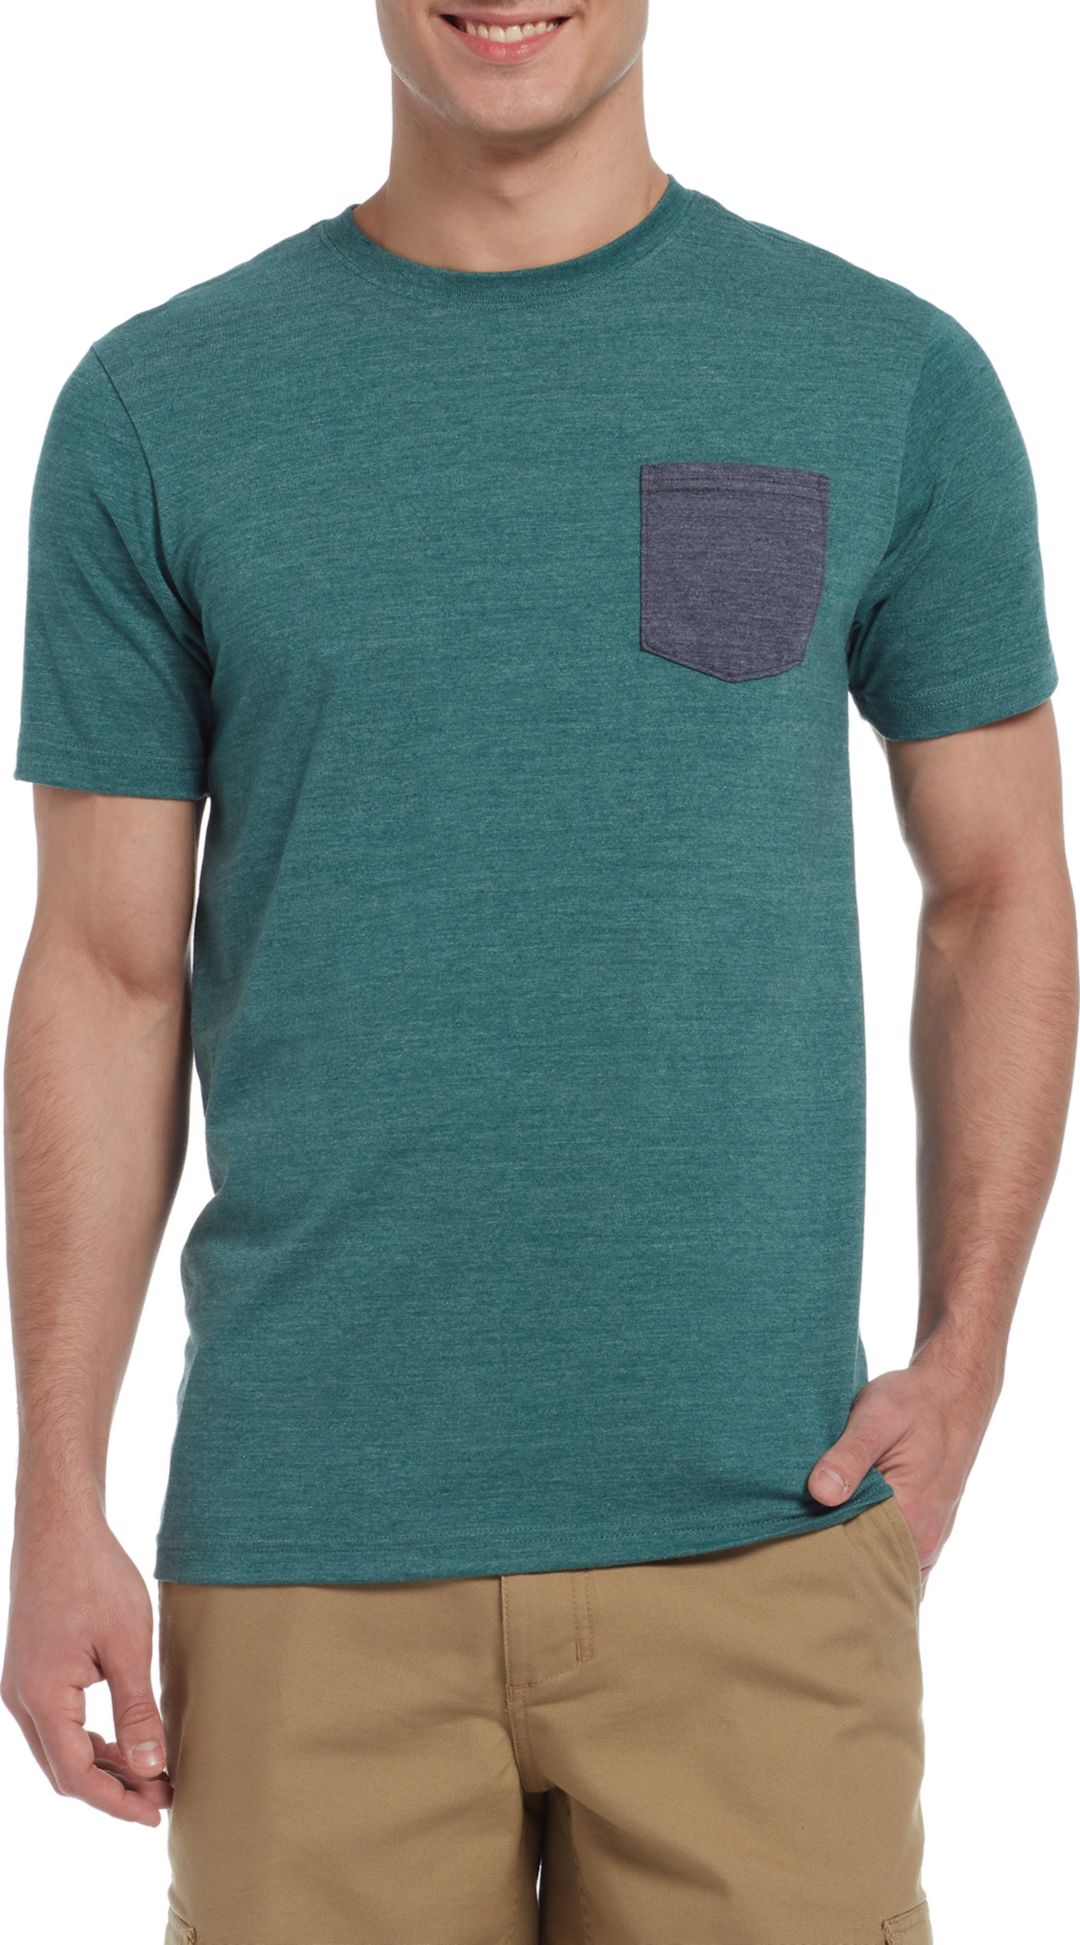 41a0eddee The North Face Men's Tri-Blend Pocket T-Shirt